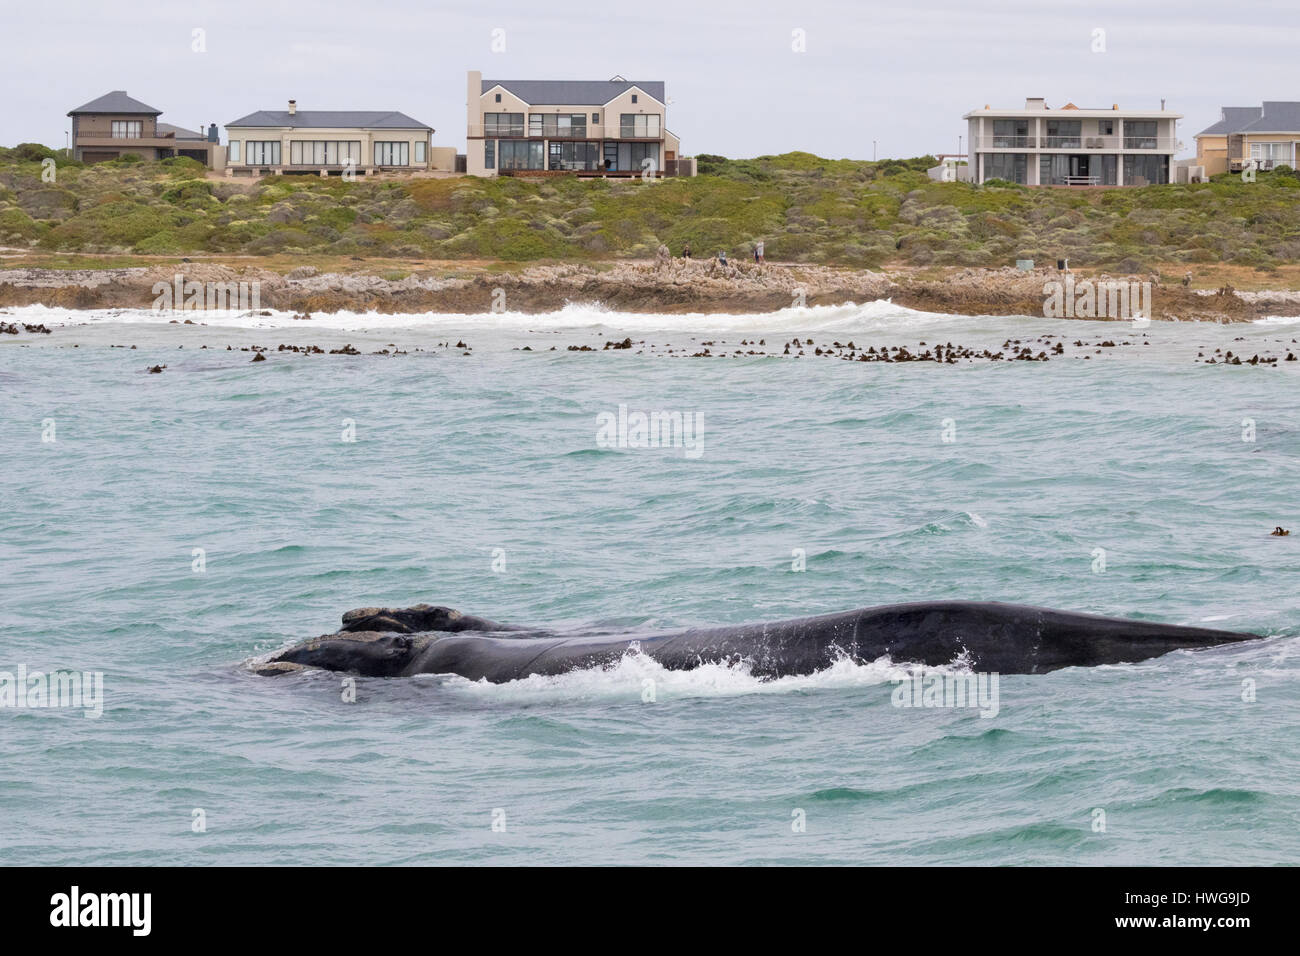 Hermanus South Africa - Southern Right Whale and calf; Whale watching off the coast of Hermanus, South Africa - Stock Image